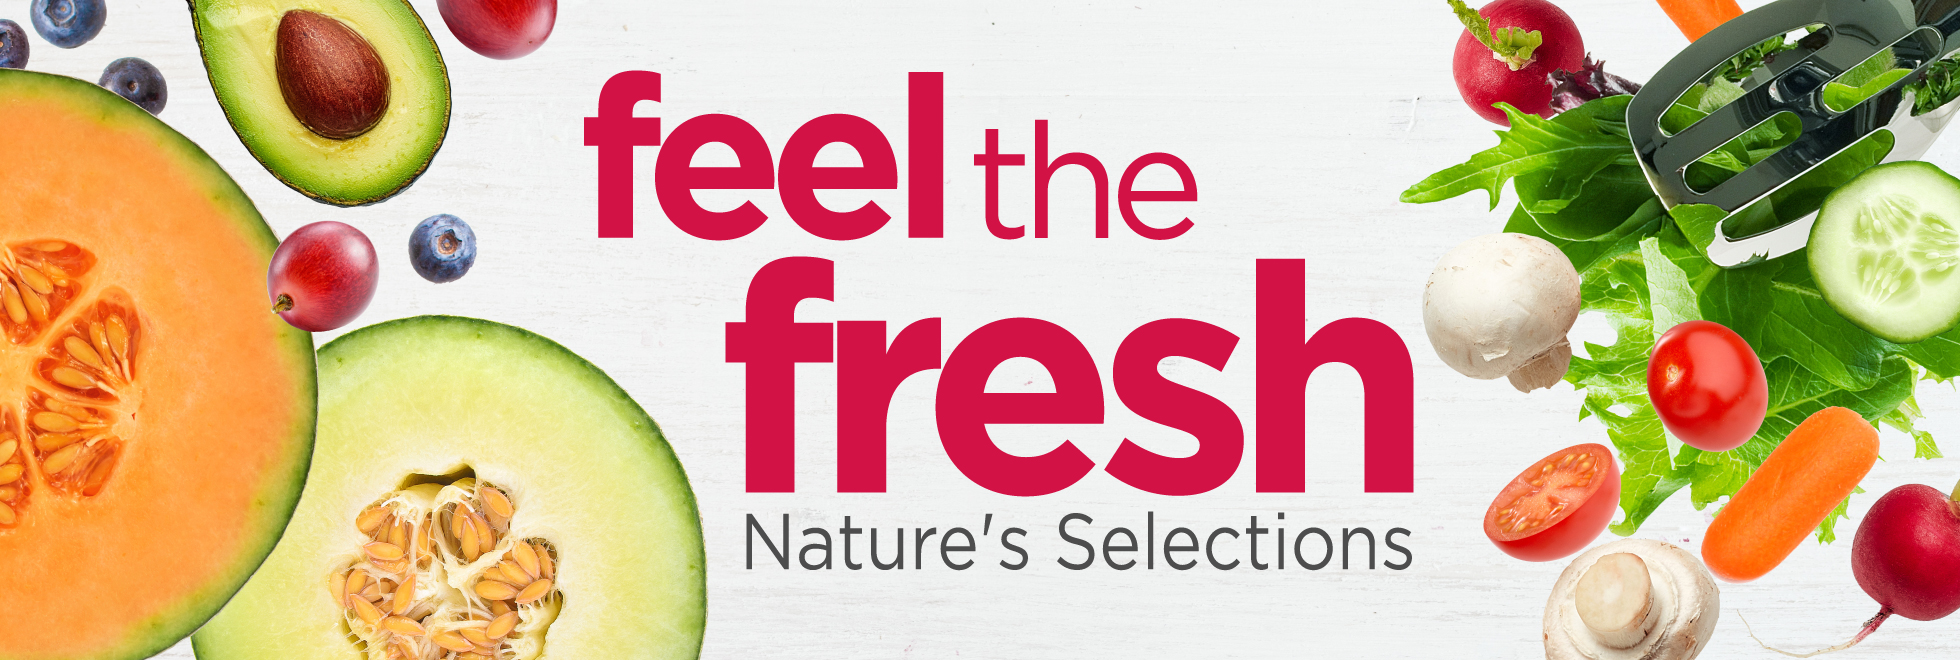 Feel the Fresh